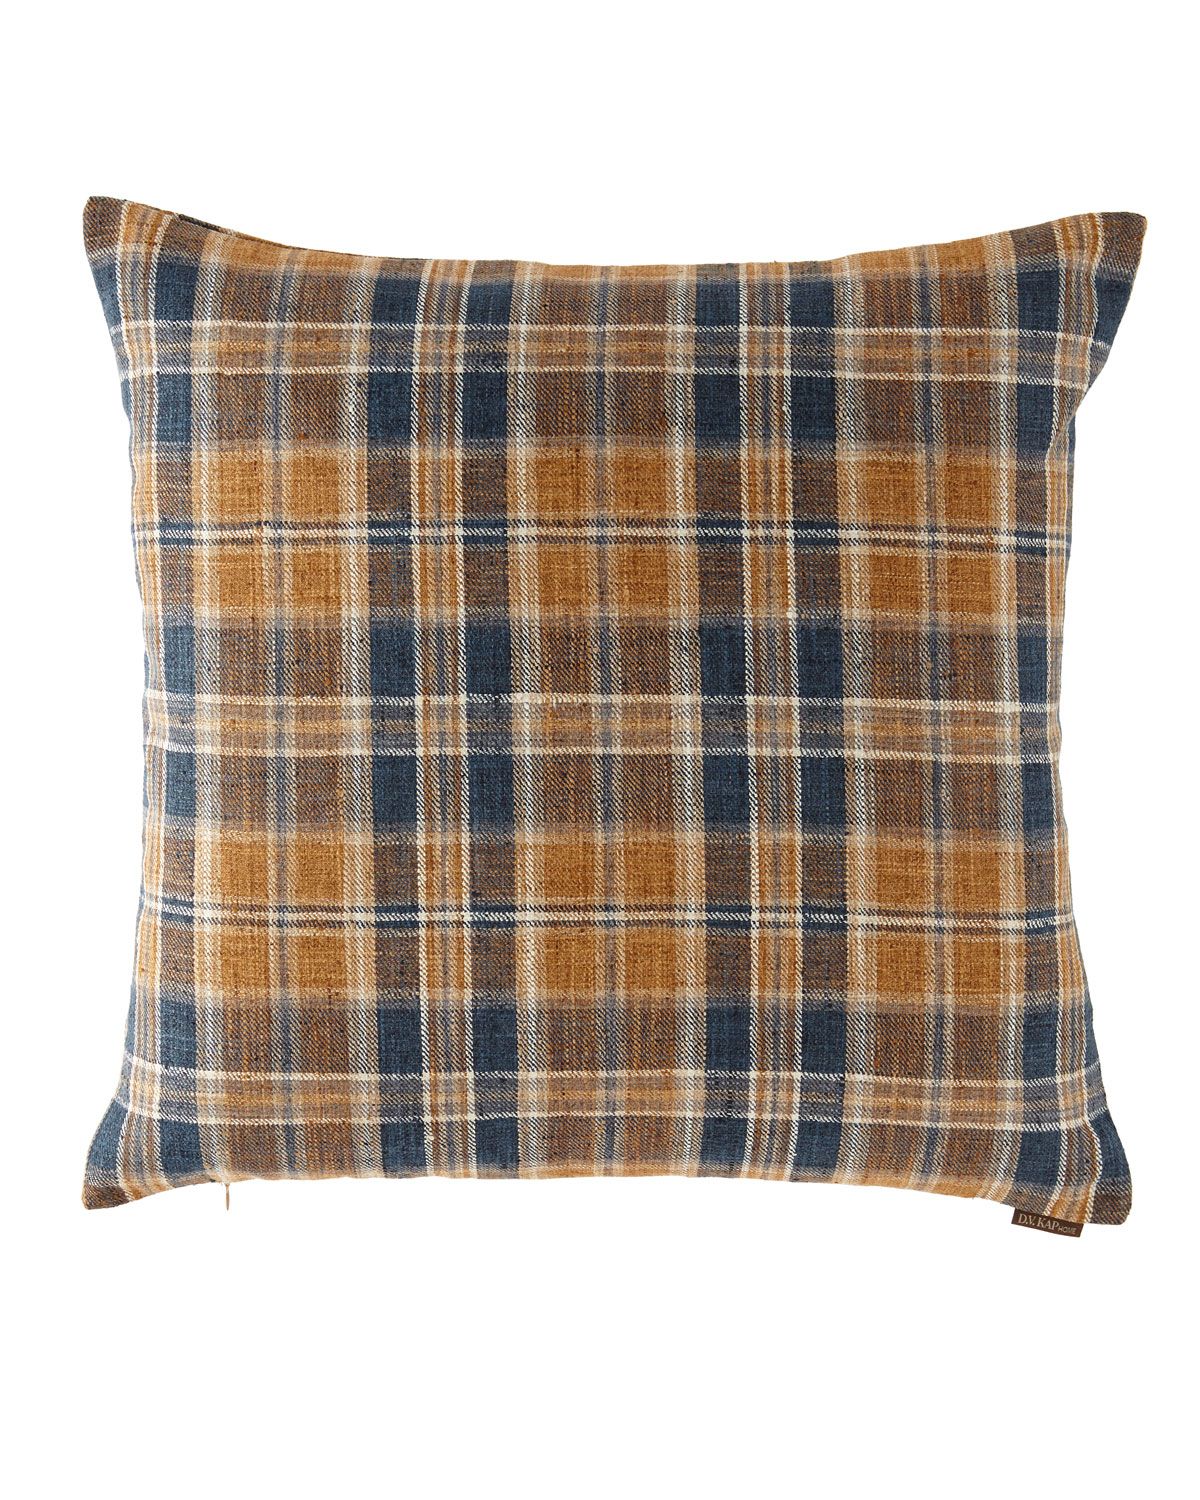 Stately Plaid Pillow, 24